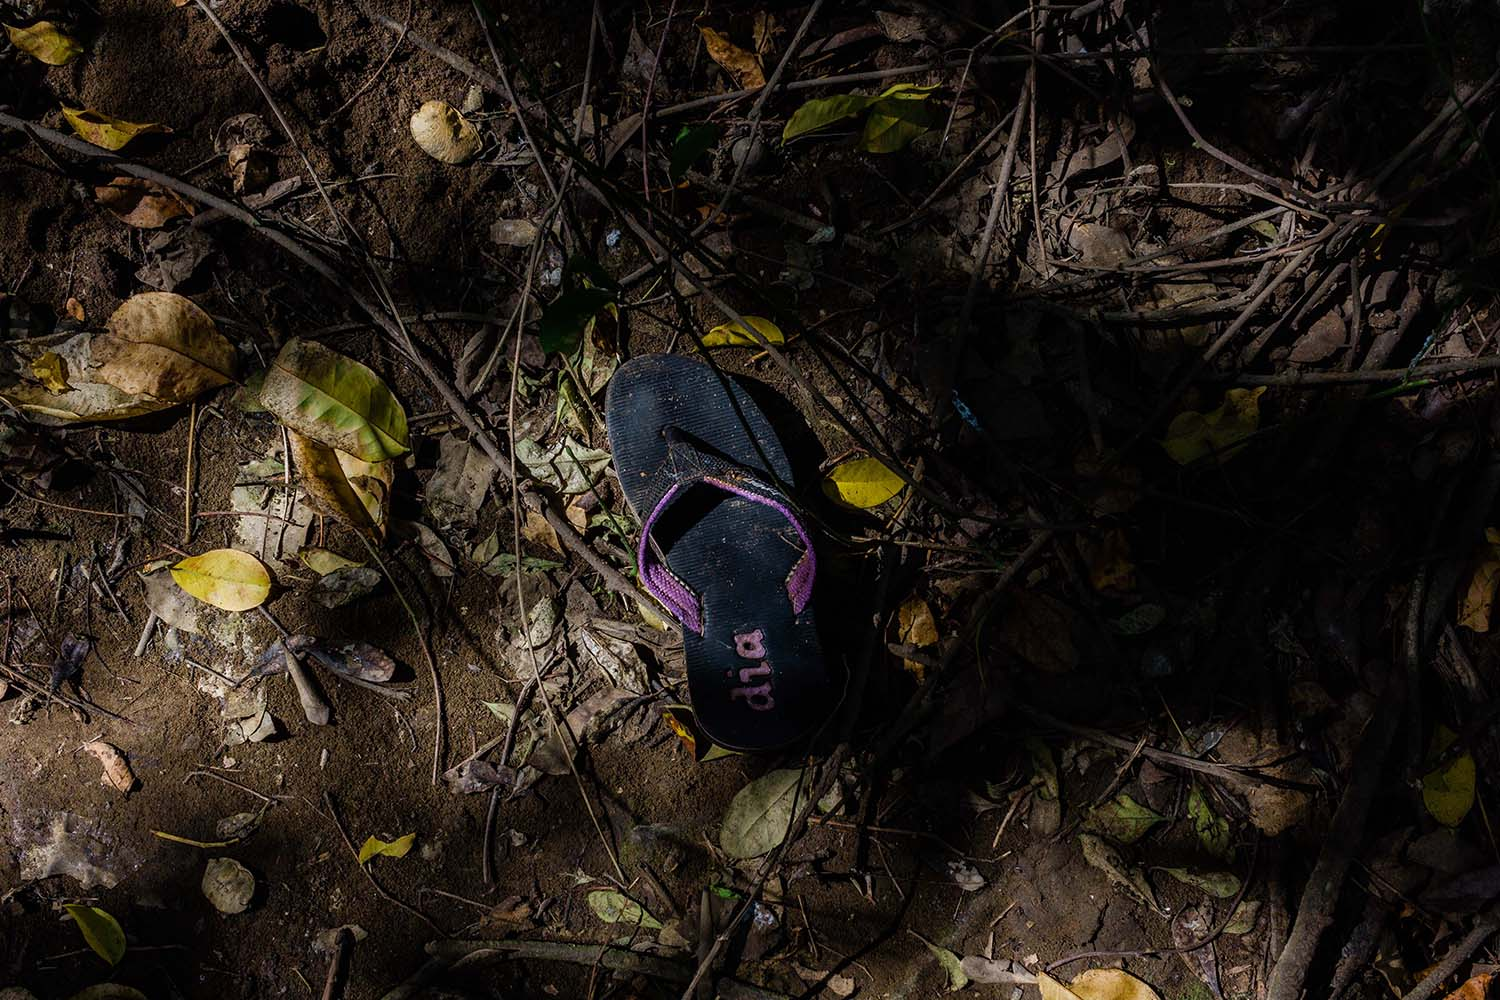 A sandal is among the pieces of domestic waste found in the mangrove area of Baros.JP/Anggertimur Lanang Tinarbuko